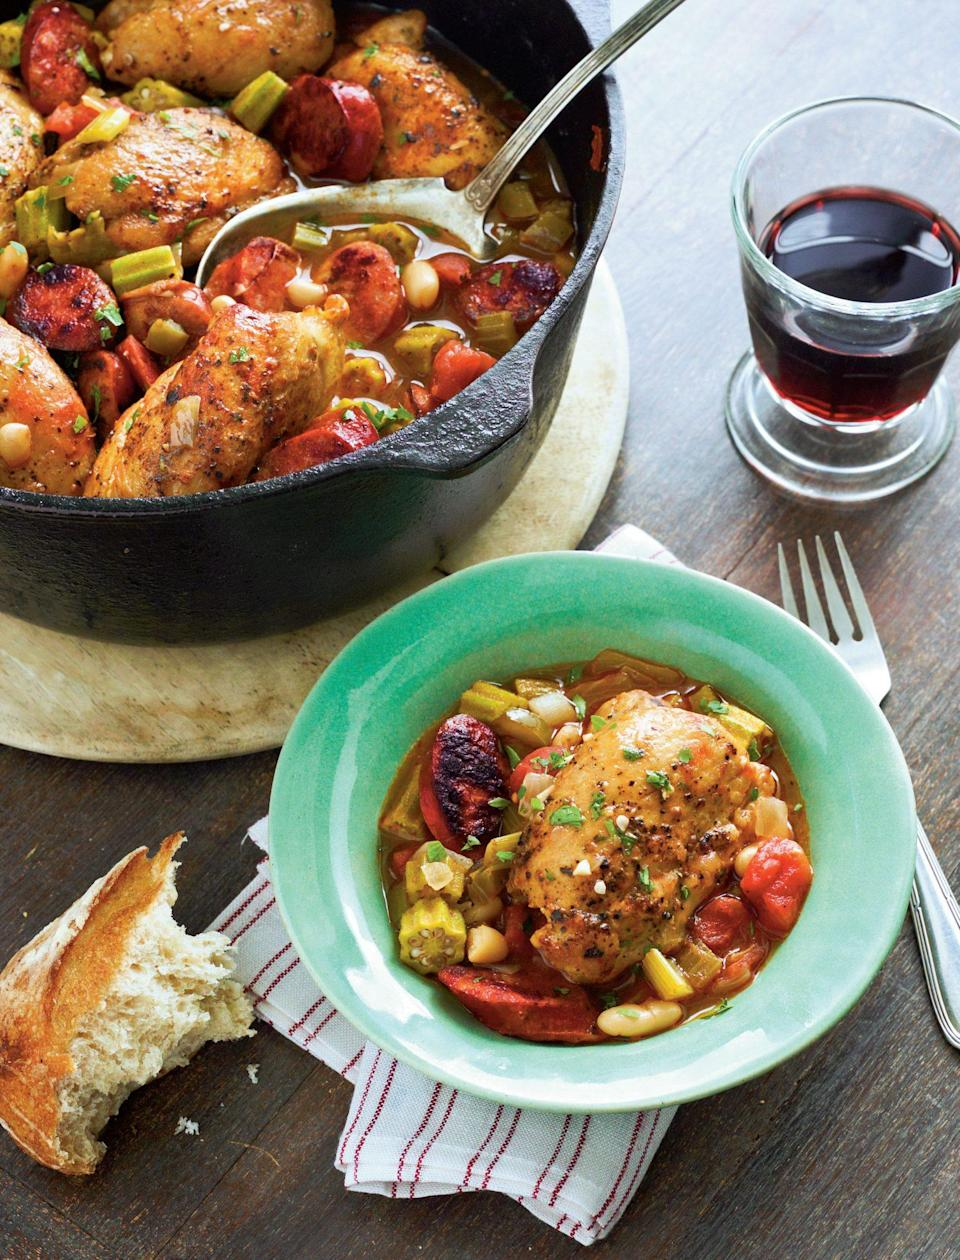 """<p><strong>Recipe: <a href=""""https://www.southernliving.com/syndication/cajun-chicken-cassoulet"""" rel=""""nofollow noopener"""" target=""""_blank"""" data-ylk=""""slk:Cajun Chicken Cassoulet"""" class=""""link rapid-noclick-resp"""">Cajun Chicken Cassoulet</a></strong></p> <p>Our Southern take on the classic French dish includes Cajun smoked sausage and okra, and it comes together much quicker than the original for a weeknight-friendly spin.</p>"""